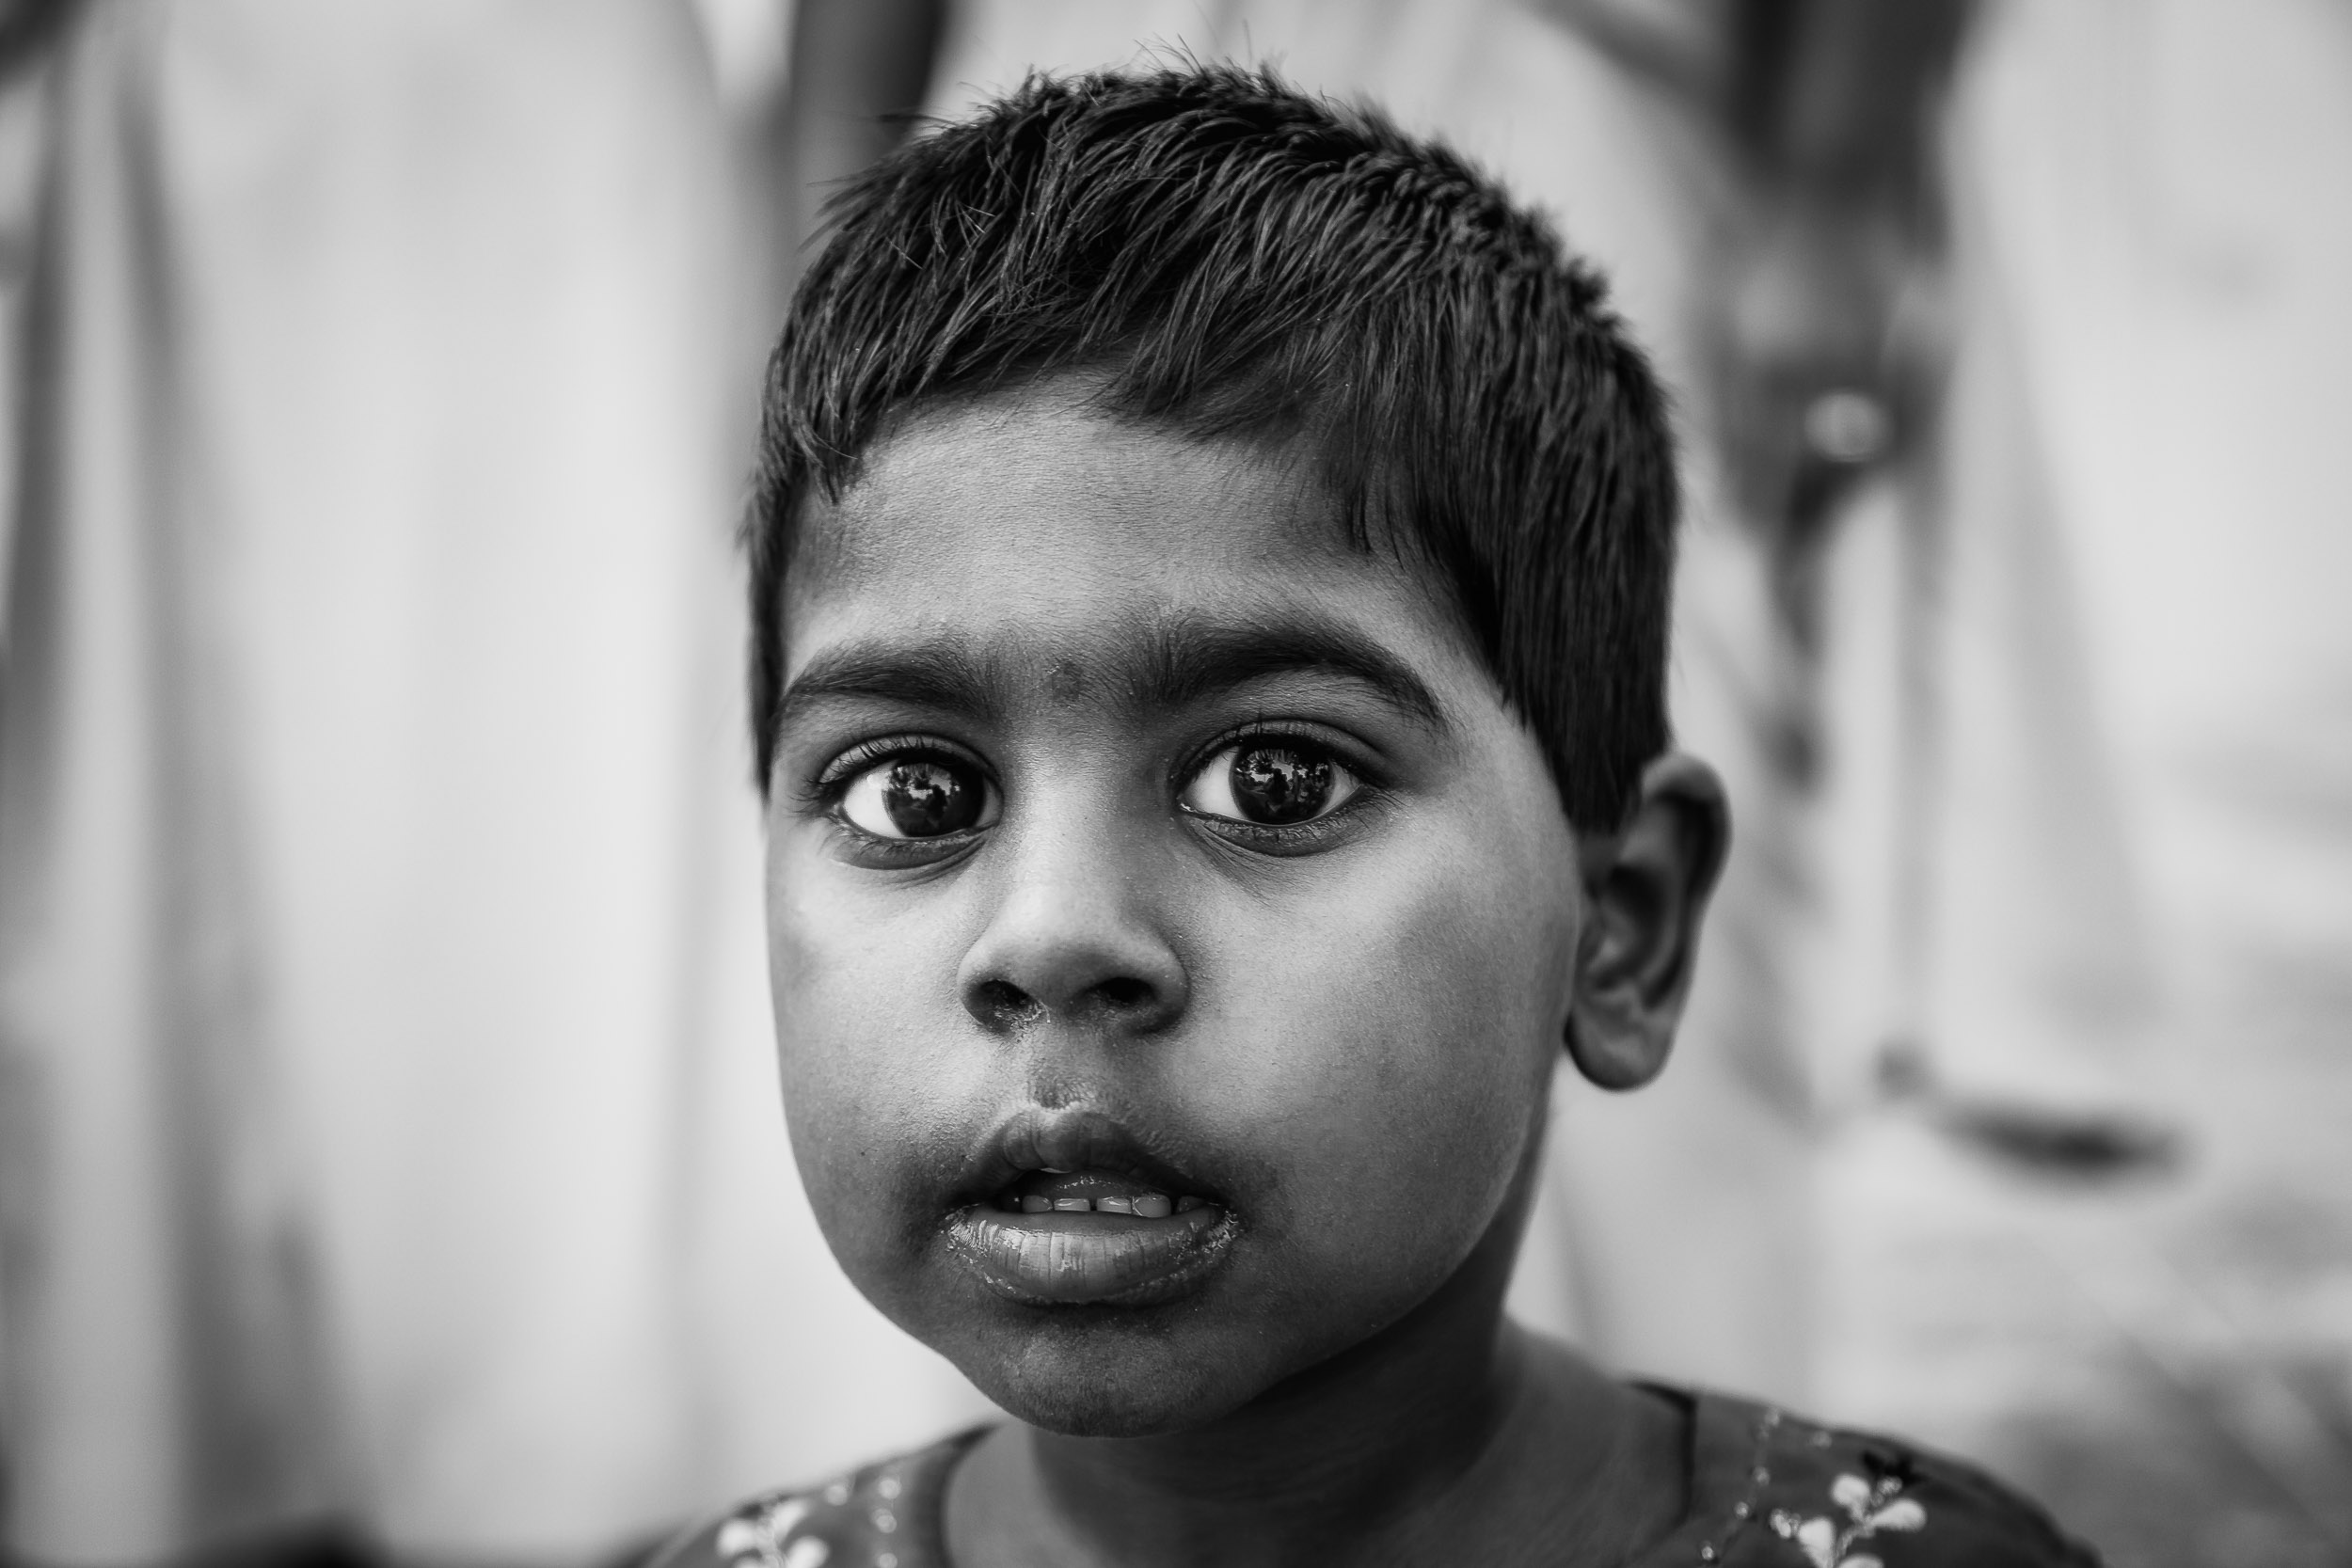 This girl is not a beggar.  She was well cared for at a  Catholic Orphanage  on the outskirts of  Chennai, India . The photographic event was supervised. You can see two nuns, whom I've put out of focus, standing directly behind the young girl.